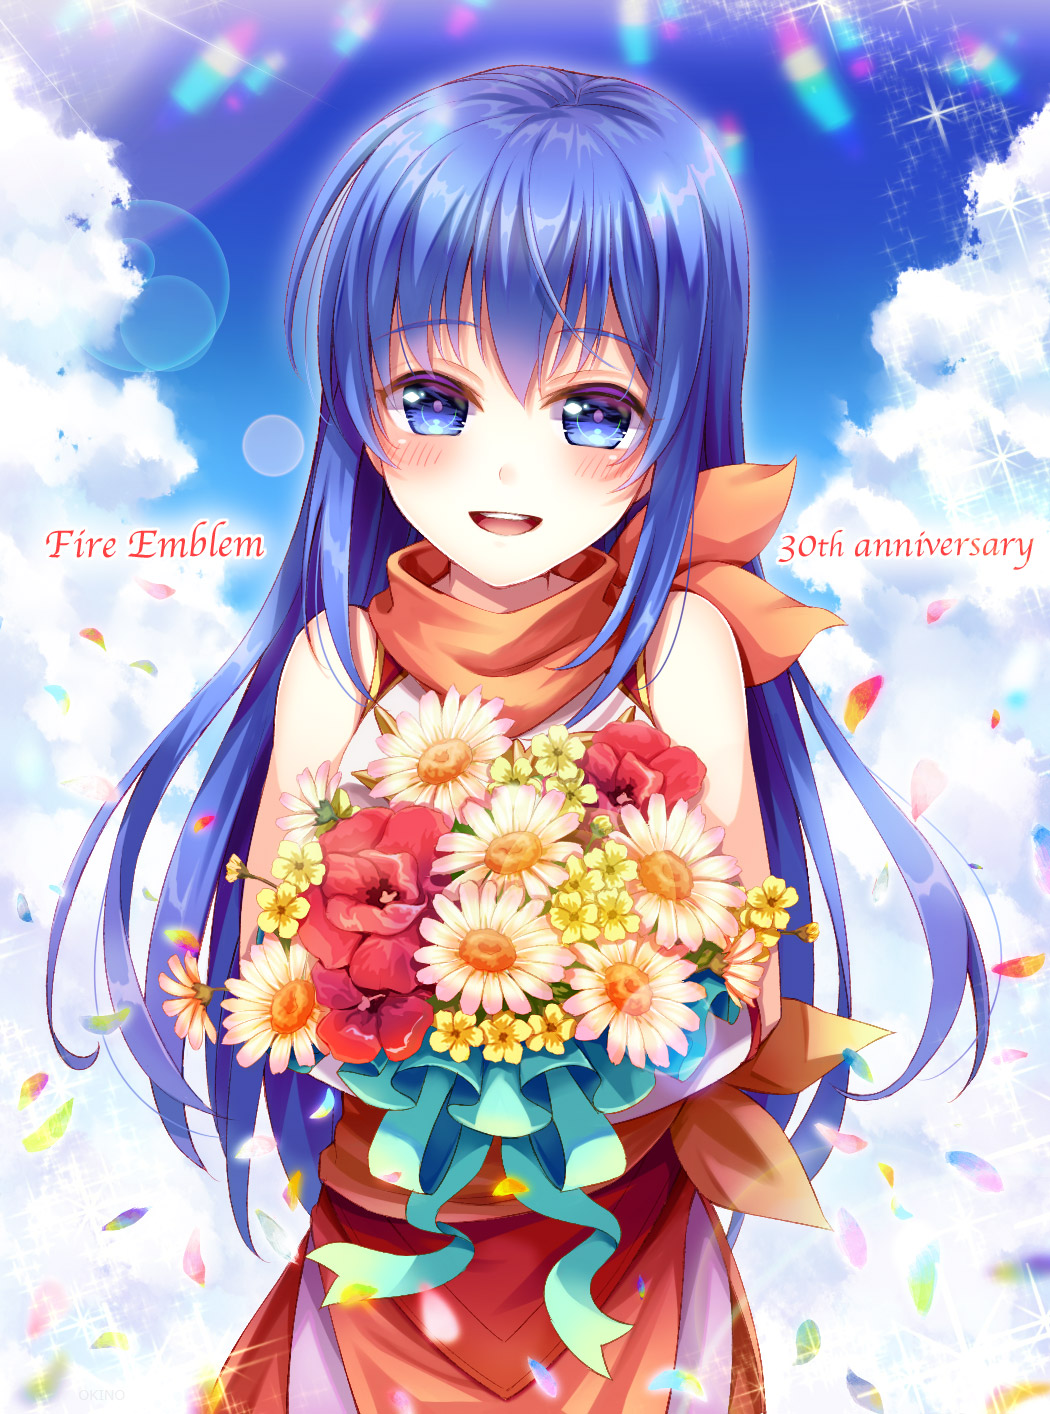 1girl anniversary blue_eyes blue_hair blue_sky bouquet caeda_(fire_emblem) child clouds copyright_name cute fire_emblem fire_emblem:_monshou_no_nazo fire_emblem:_monshou_no_nazo_(anime) fire_emblem:_mystery_of_the_emblem fire_emblem:_mystery_of_the_emblem_ova fire_emblem:_shin_ankoku_ryuu_to_hikari_no_tsurugi fire_emblem_11 fire_emblem_3 fire_emblem_heroes fire_emblem_shadow_dragon flower highres holding if_oki intelligent_systems long_hair nintendo open_mouth petals sheeda sky sleeveless solo younger